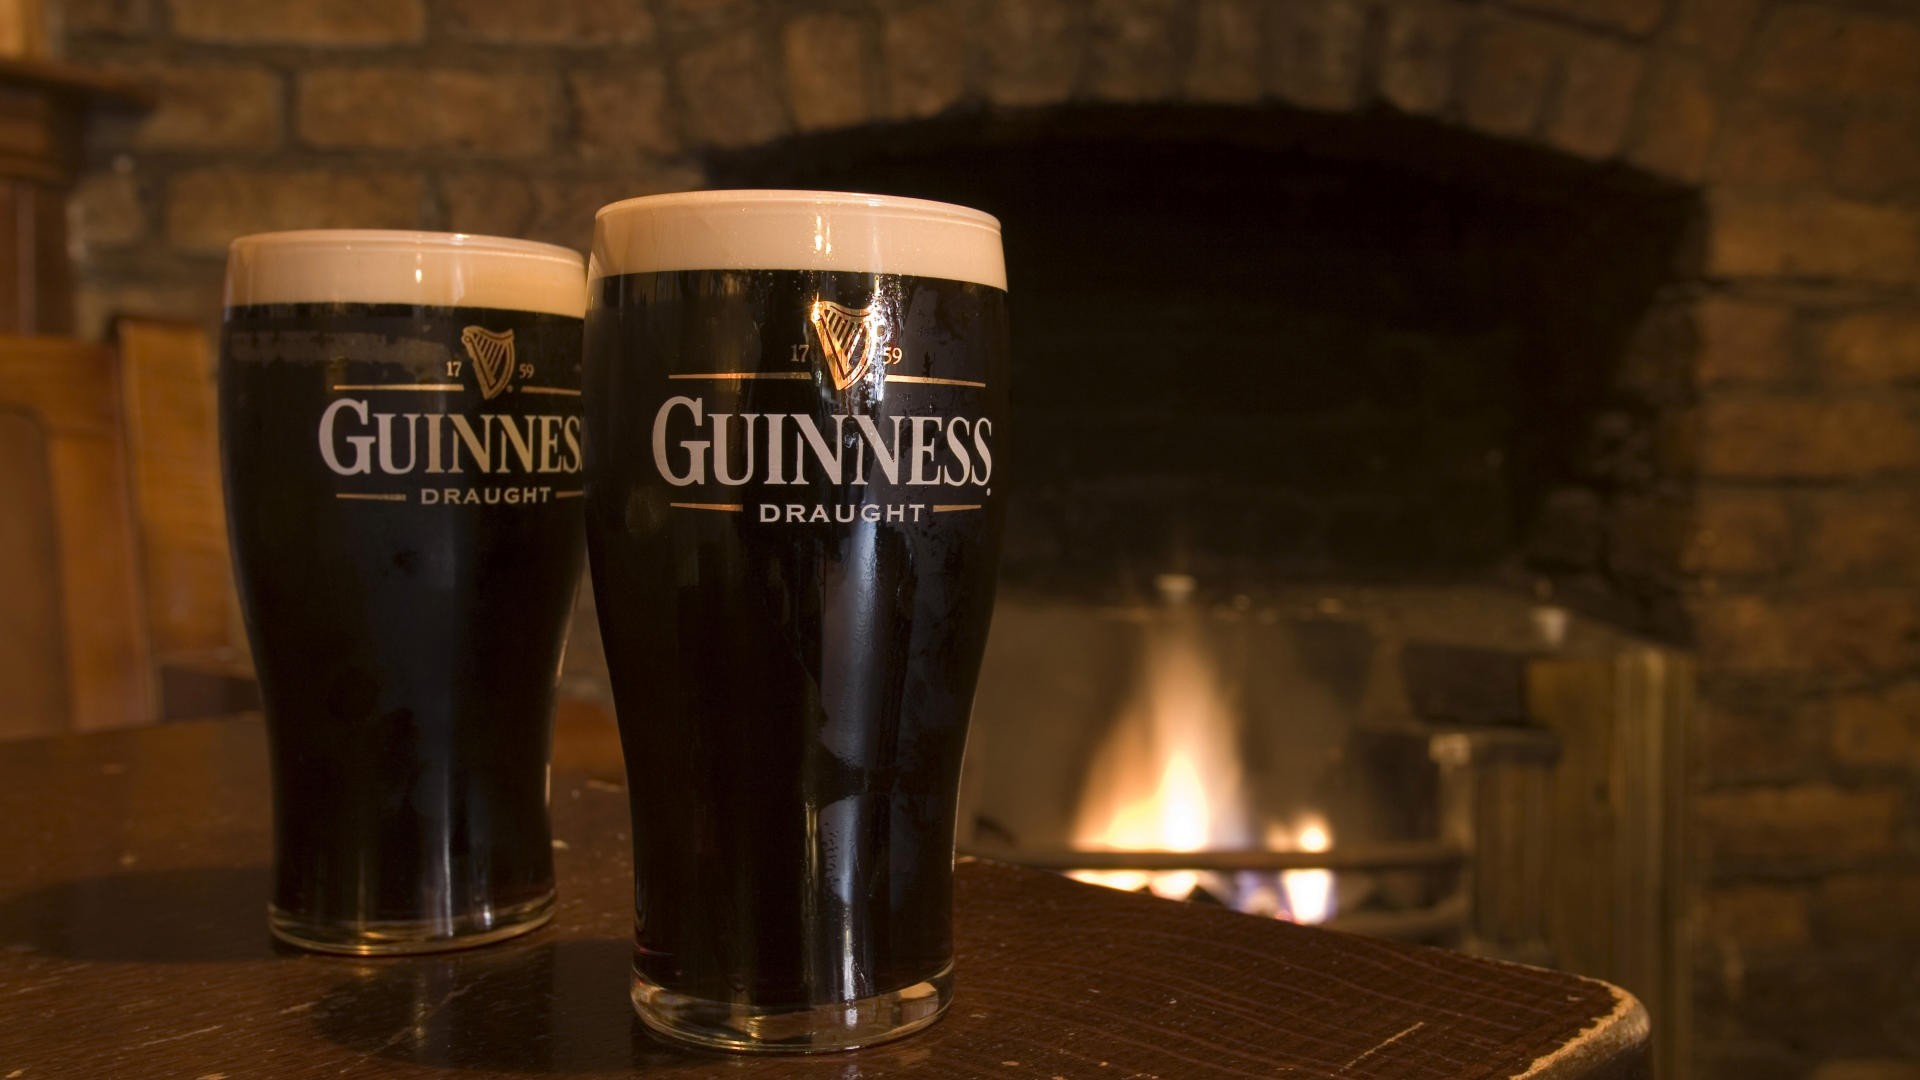 Beers guinness alcohol ireland wallpaper 1920x1080 for Guinness beer in ireland